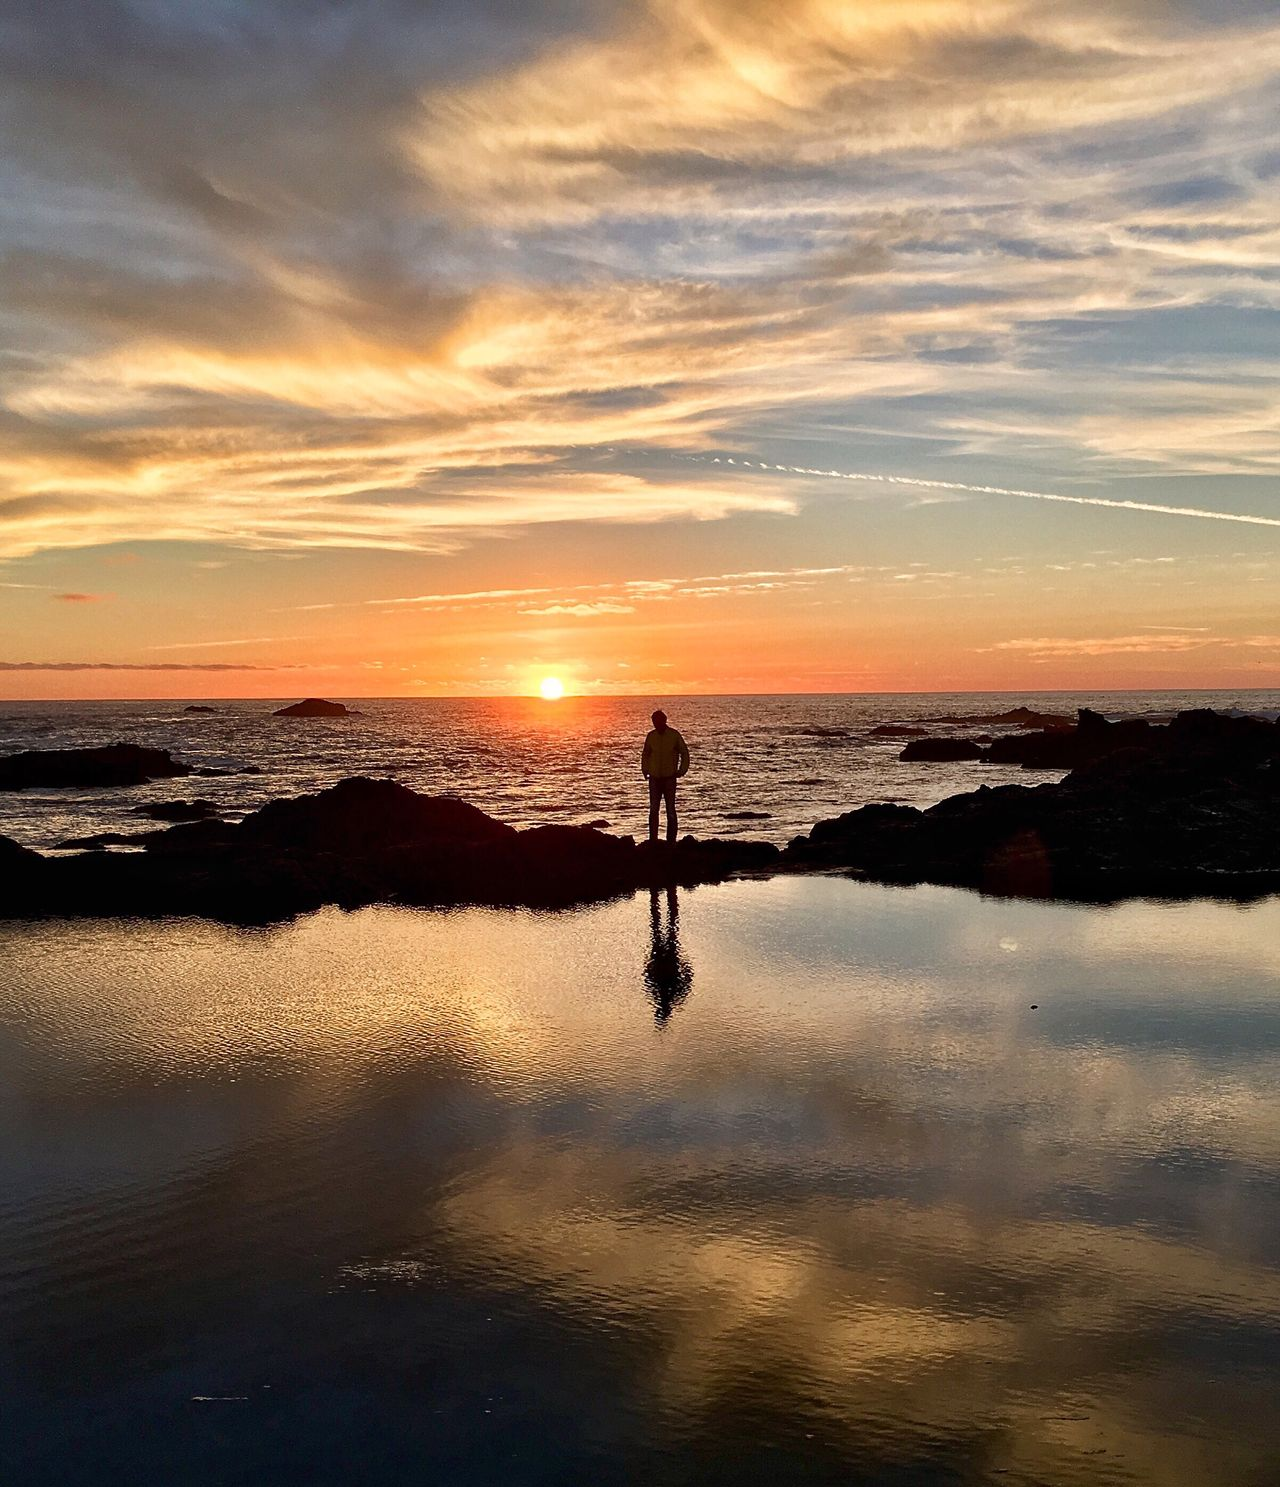 TCPM EyeEmBestPics Check This Out EyeEm Diversity EyeEm Gallery Outdoors Sunset_collection Man's Reflection Silhouette Fort Bragg EyeEm Best Shots Beach Sillouette Reflection EyeEm Nature Lover IPhoneography Sunset Silhouettes Sunset And Clouds  The Great Outdoors - 2017 EyeEm Awards See The Light